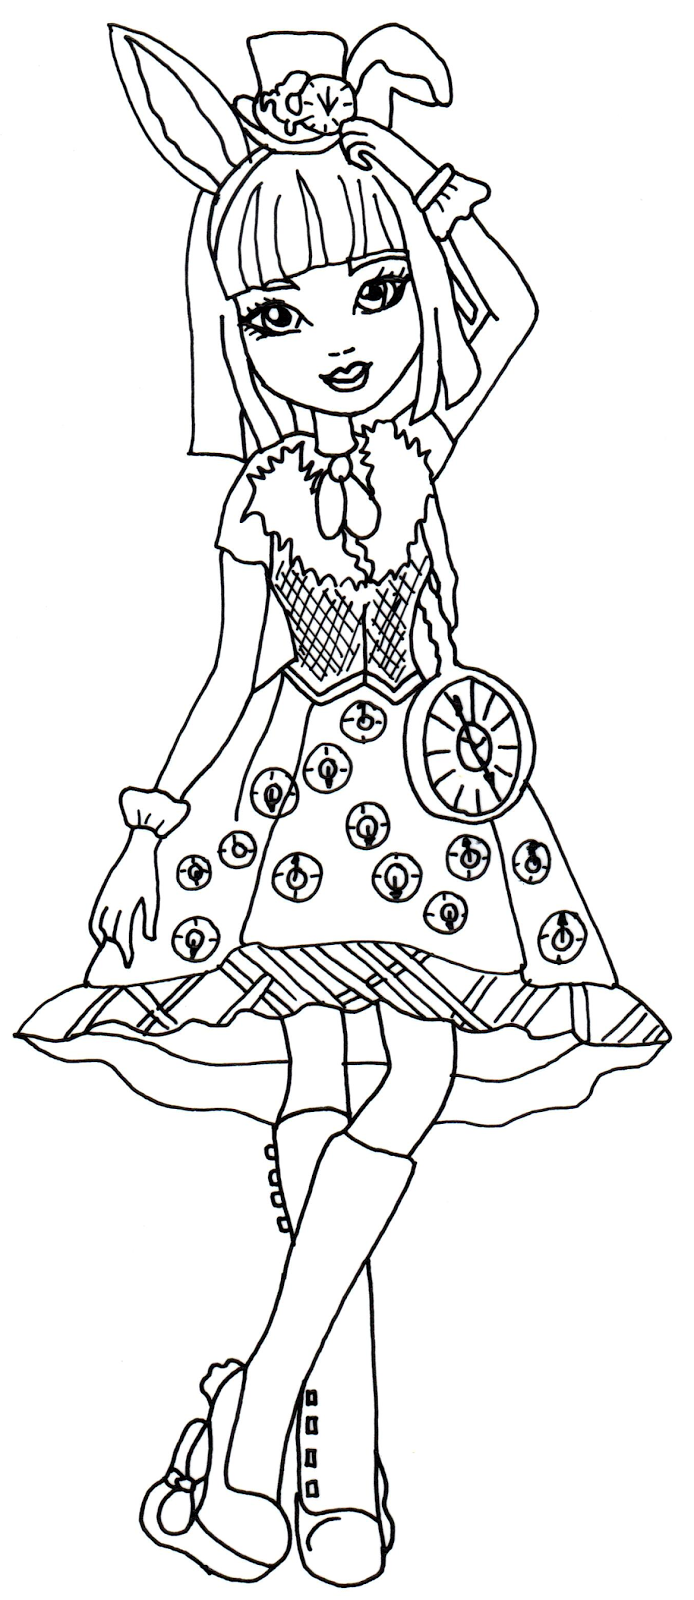 Free Printable Ever After High Coloring Pages: Bunny Blanc ...